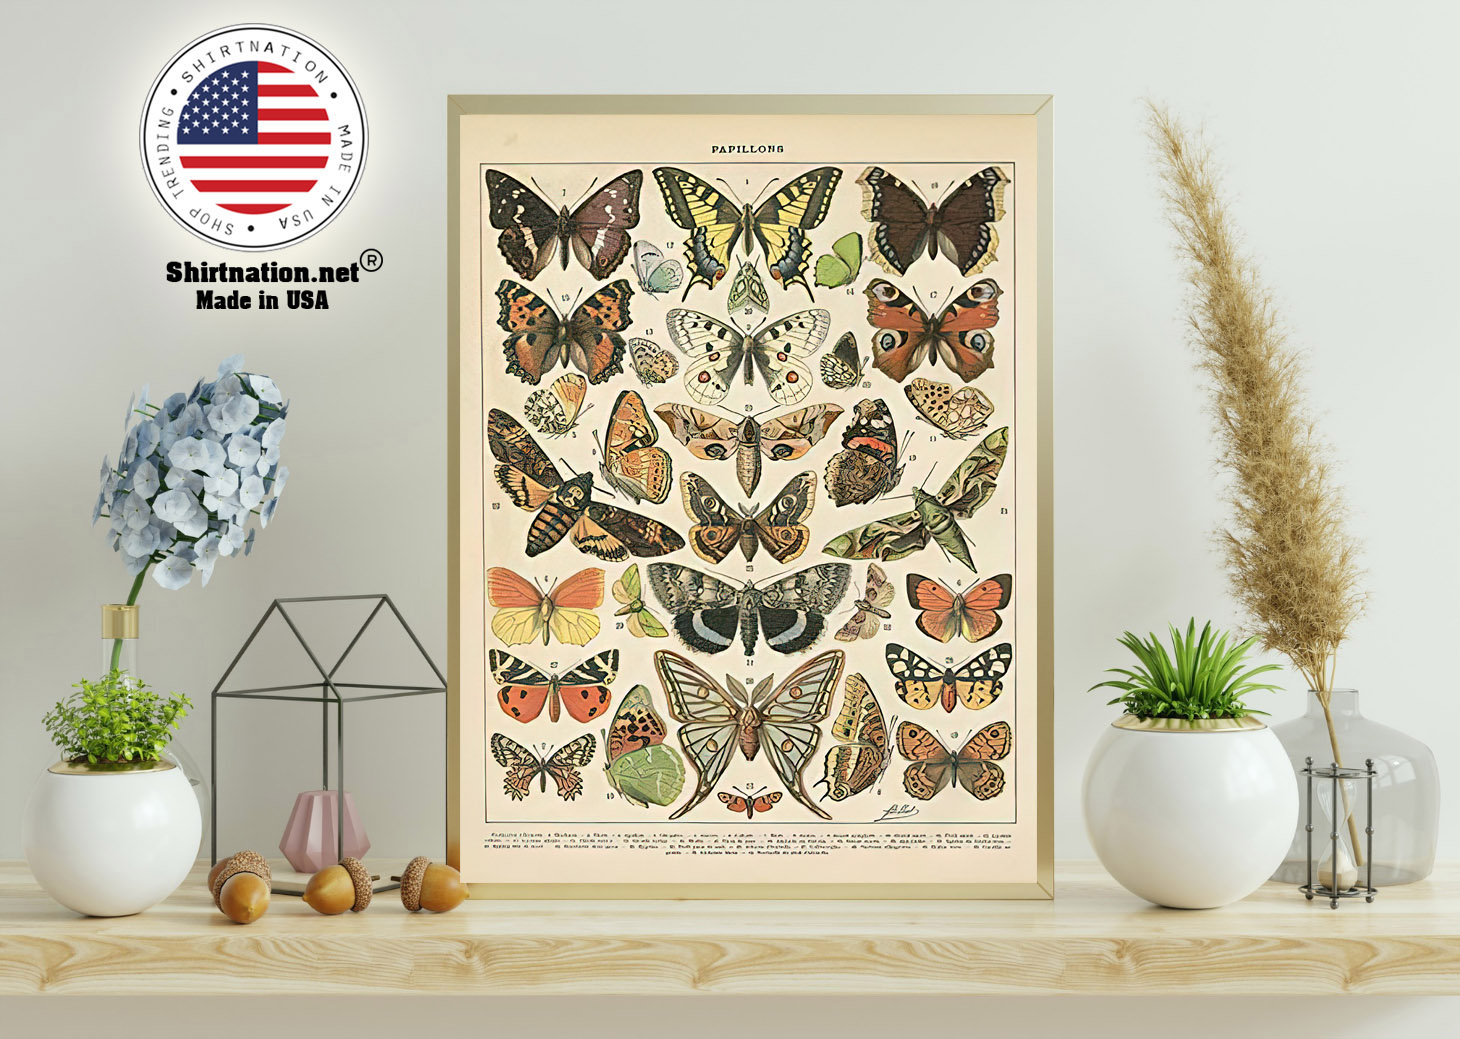 Popular vintage french types of papillons butterflies poster 11